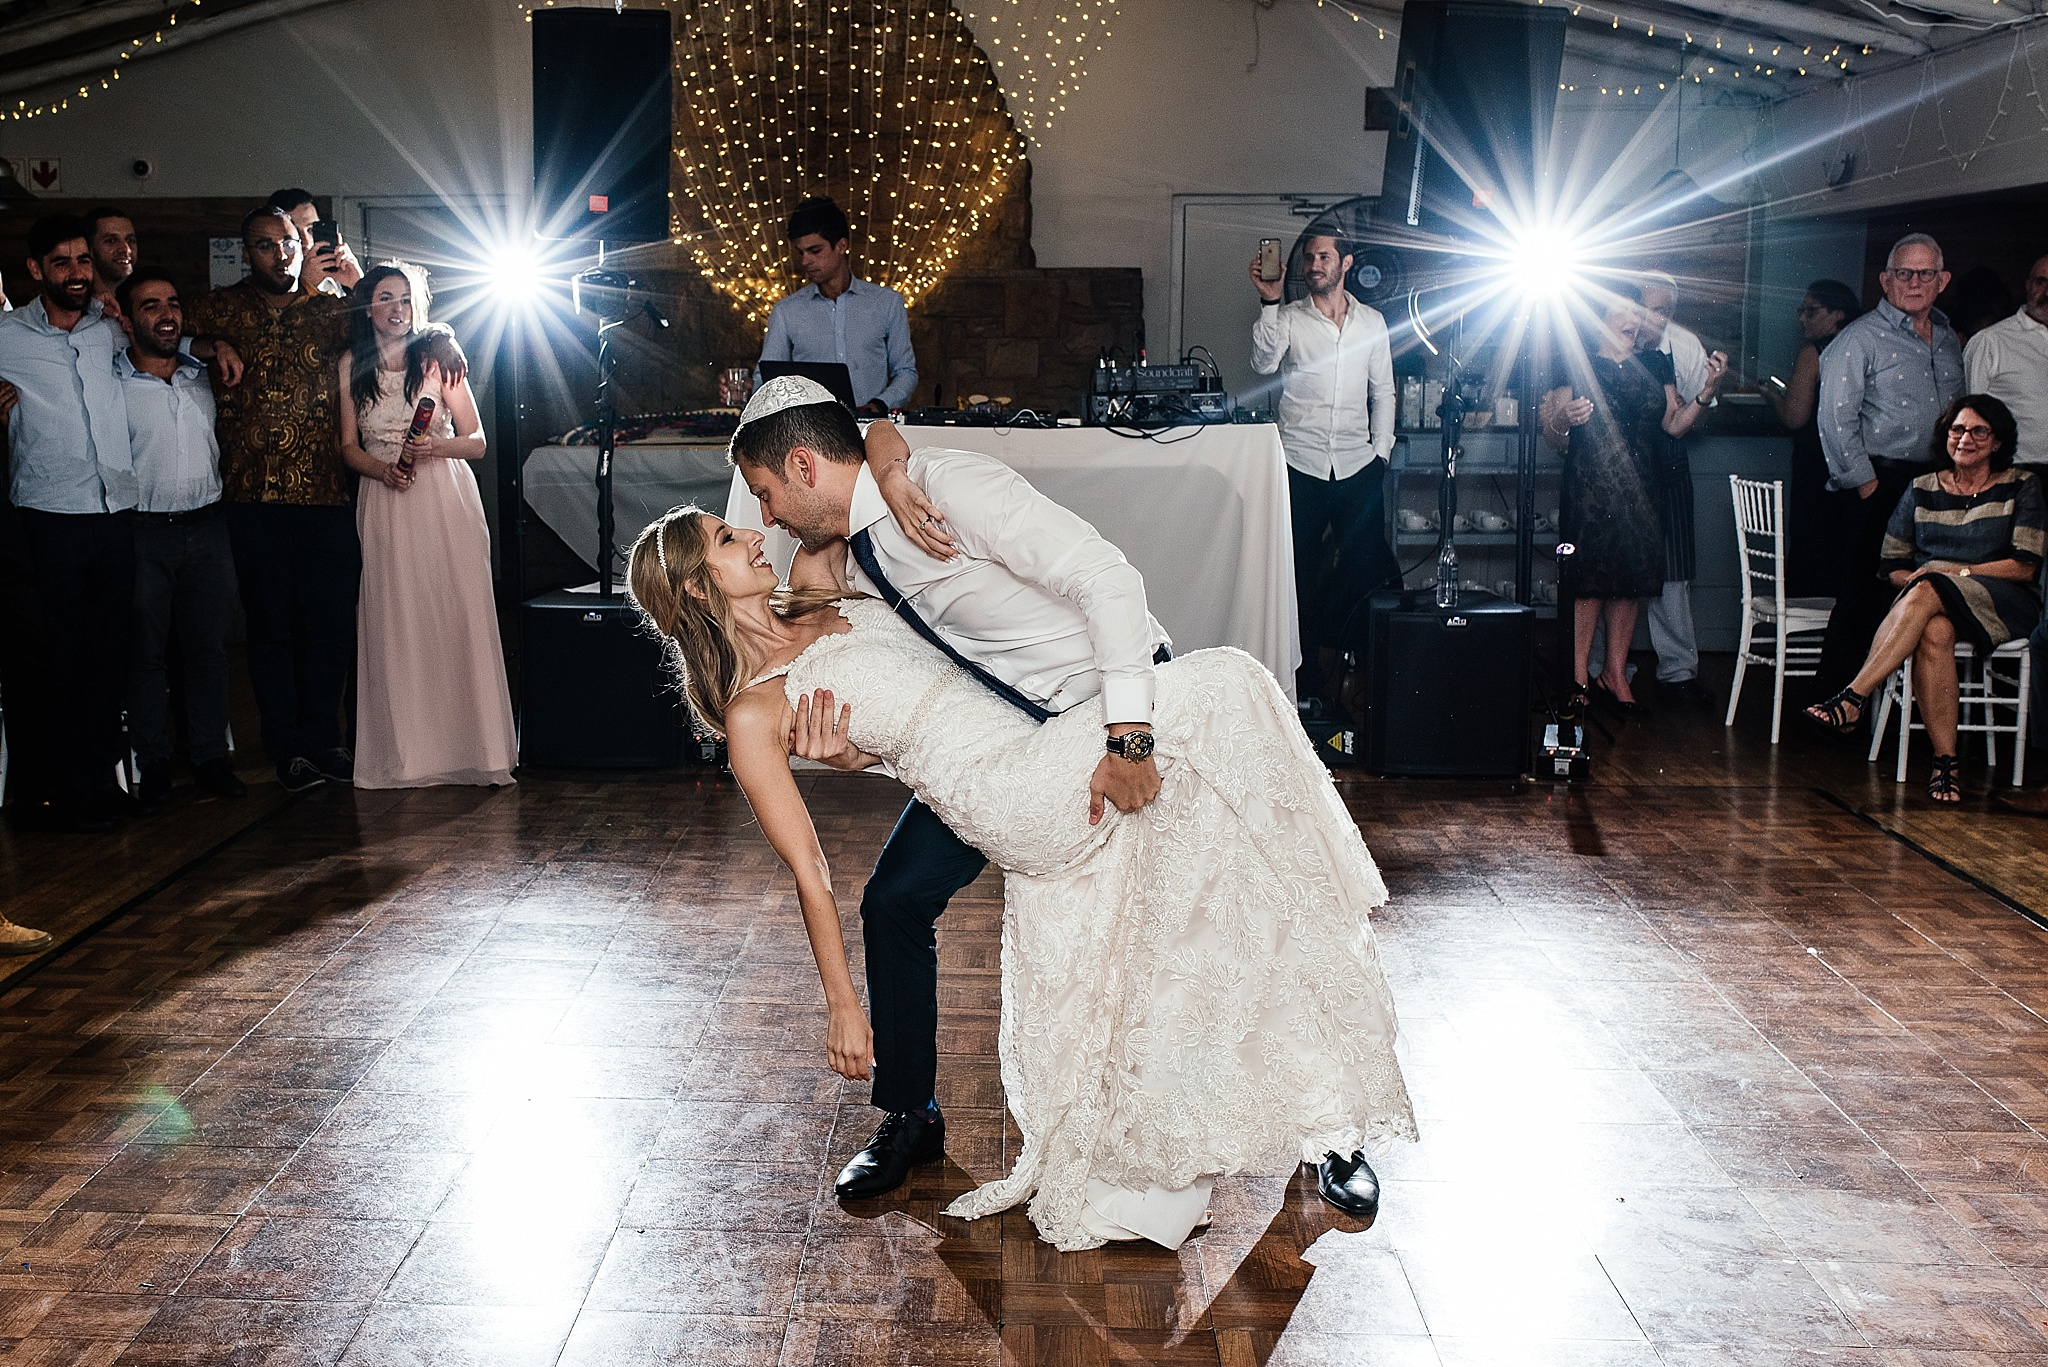 Cape Town Wedding Photographer Darren Bester - SuikerBossie - Stephen and Mikaela_0070.jpg